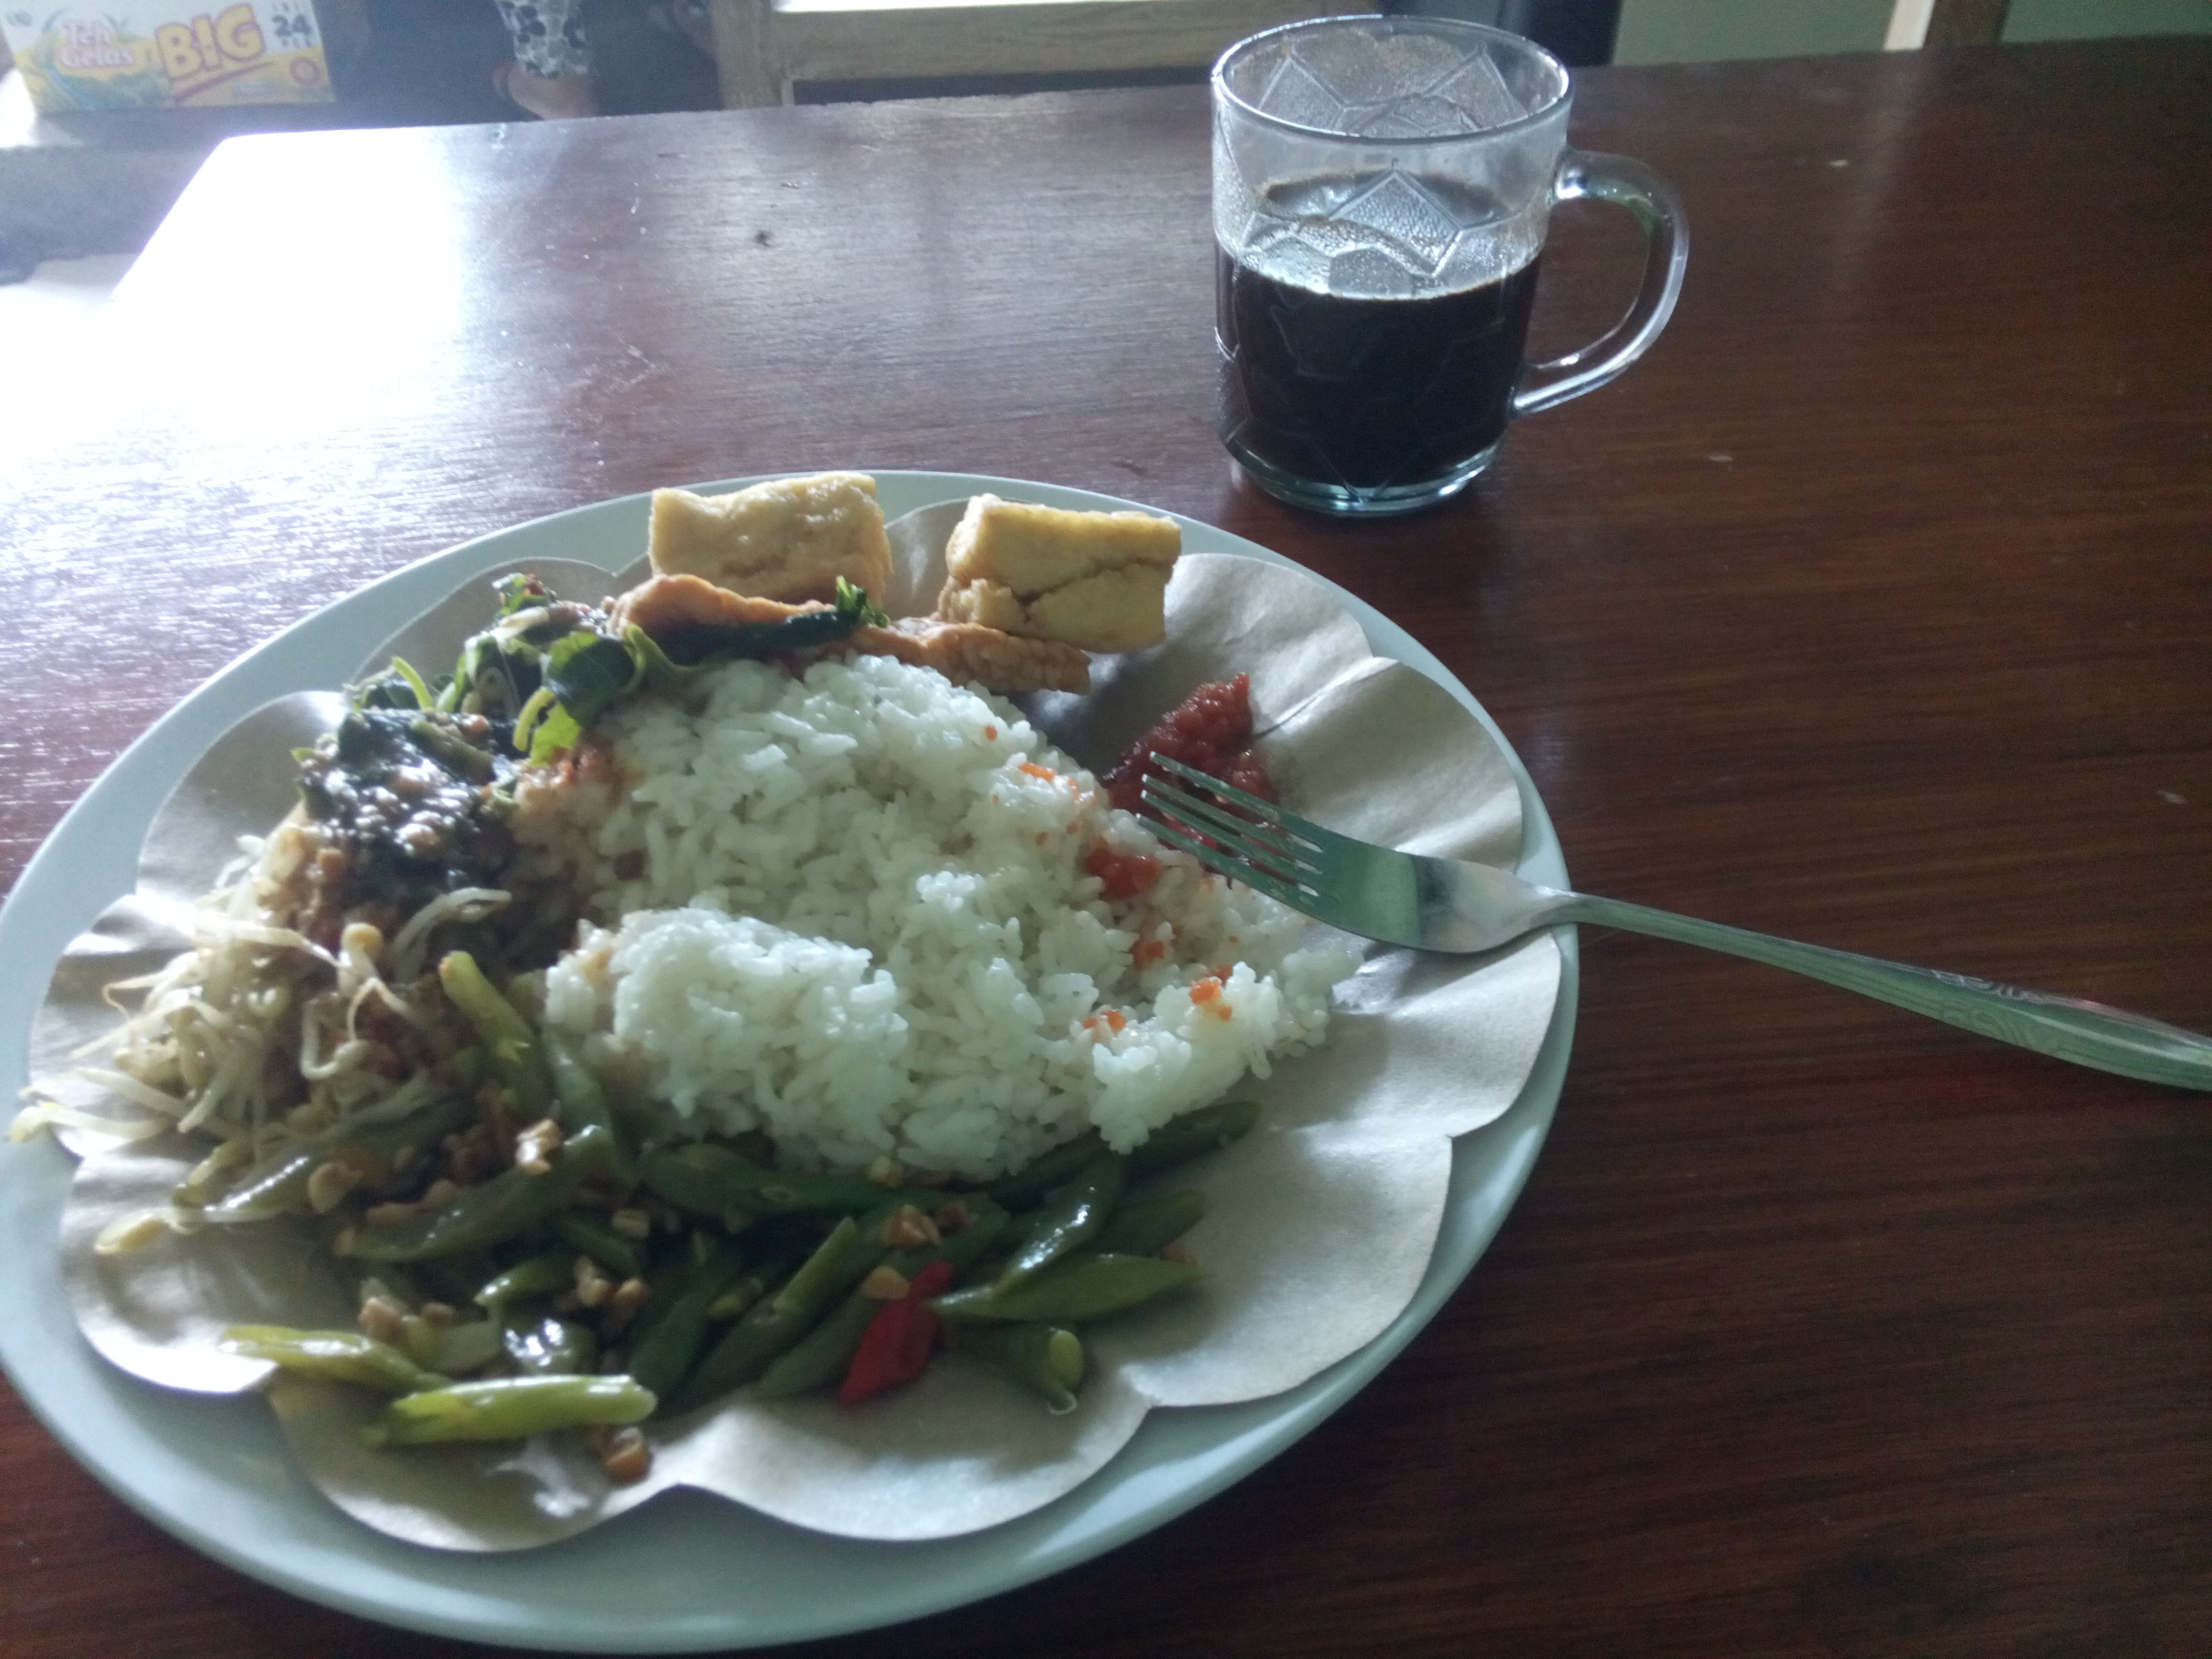 A plate of Indoenisan food, and coffee